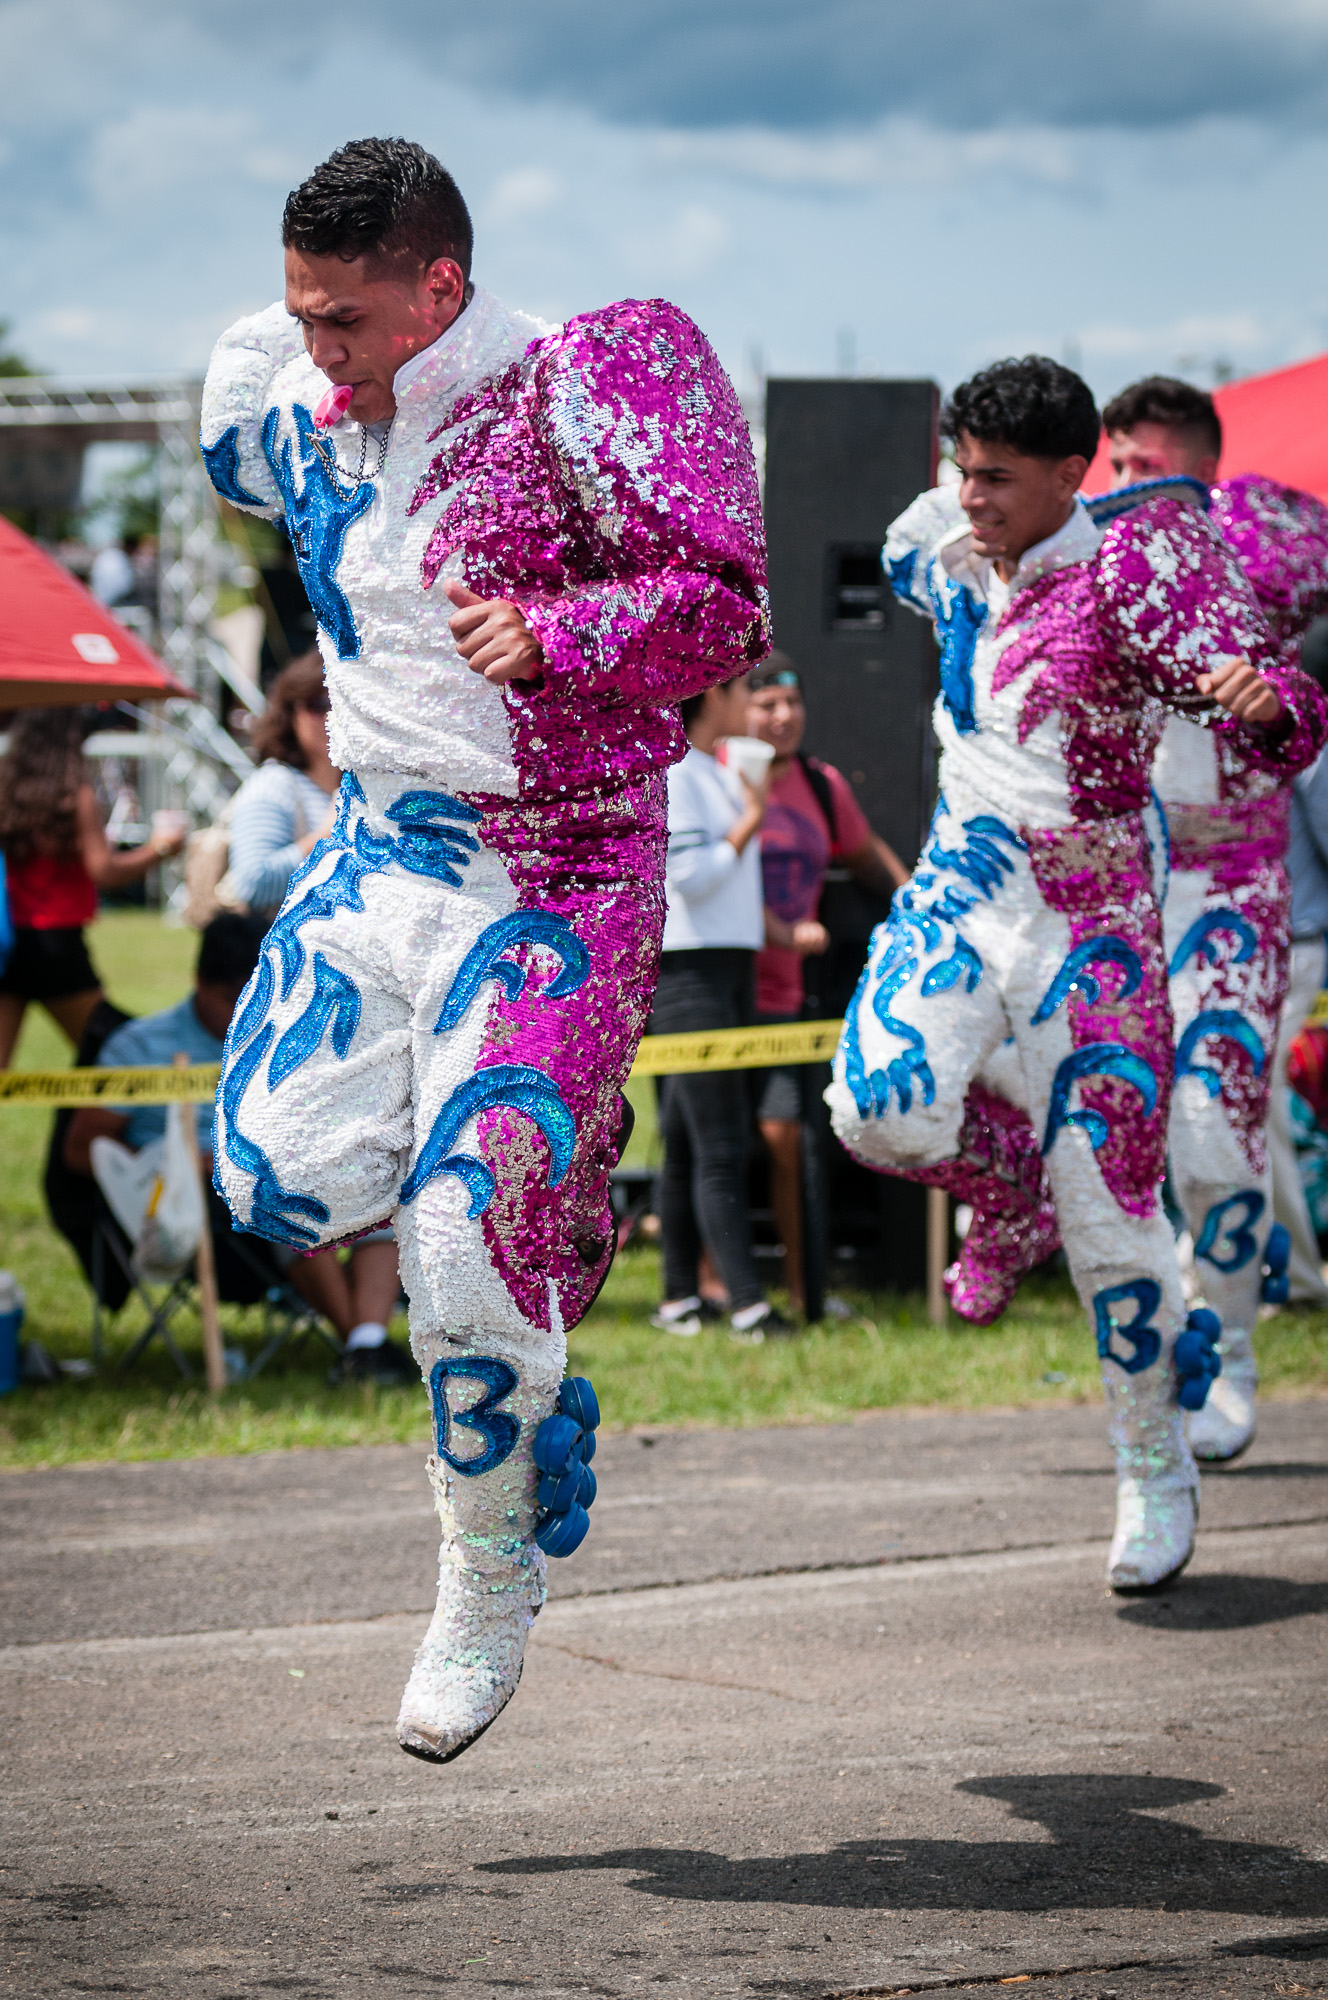 The Caporales dance performed by Fraternidad Folklorica Bolivia included energetic jumps and costumes that reflected colored light into their faces when the sun shone on them. Direct sunlight is not always a bad thing.